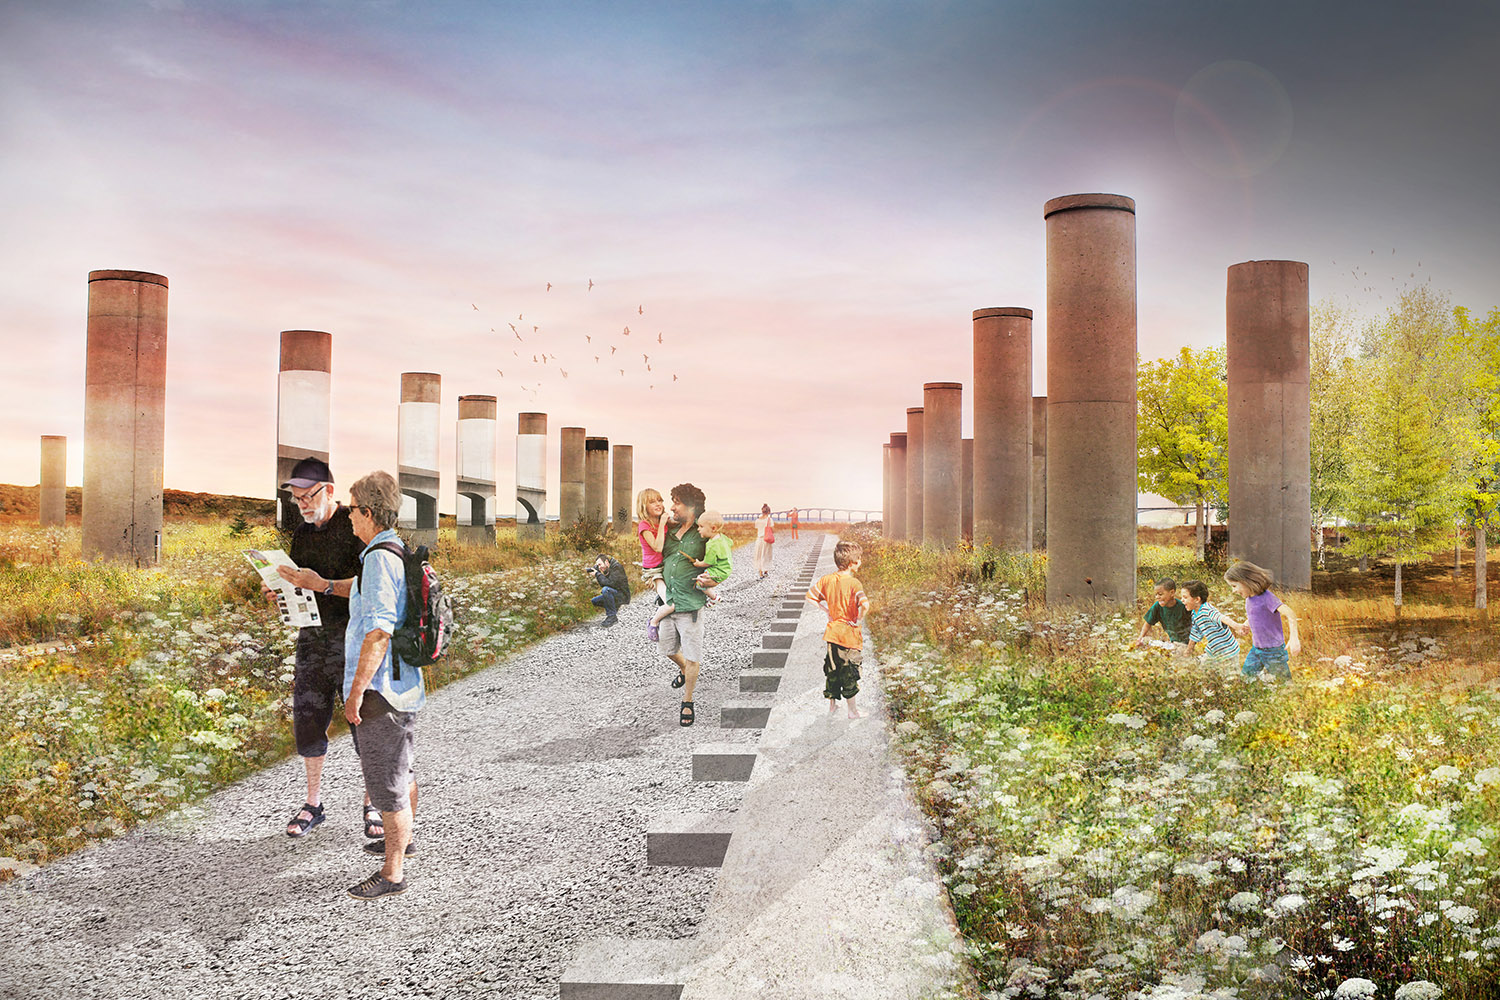 The plan celebrates the importance of the Fabrication Yards through creating it as a park, and cultural hub for Island.